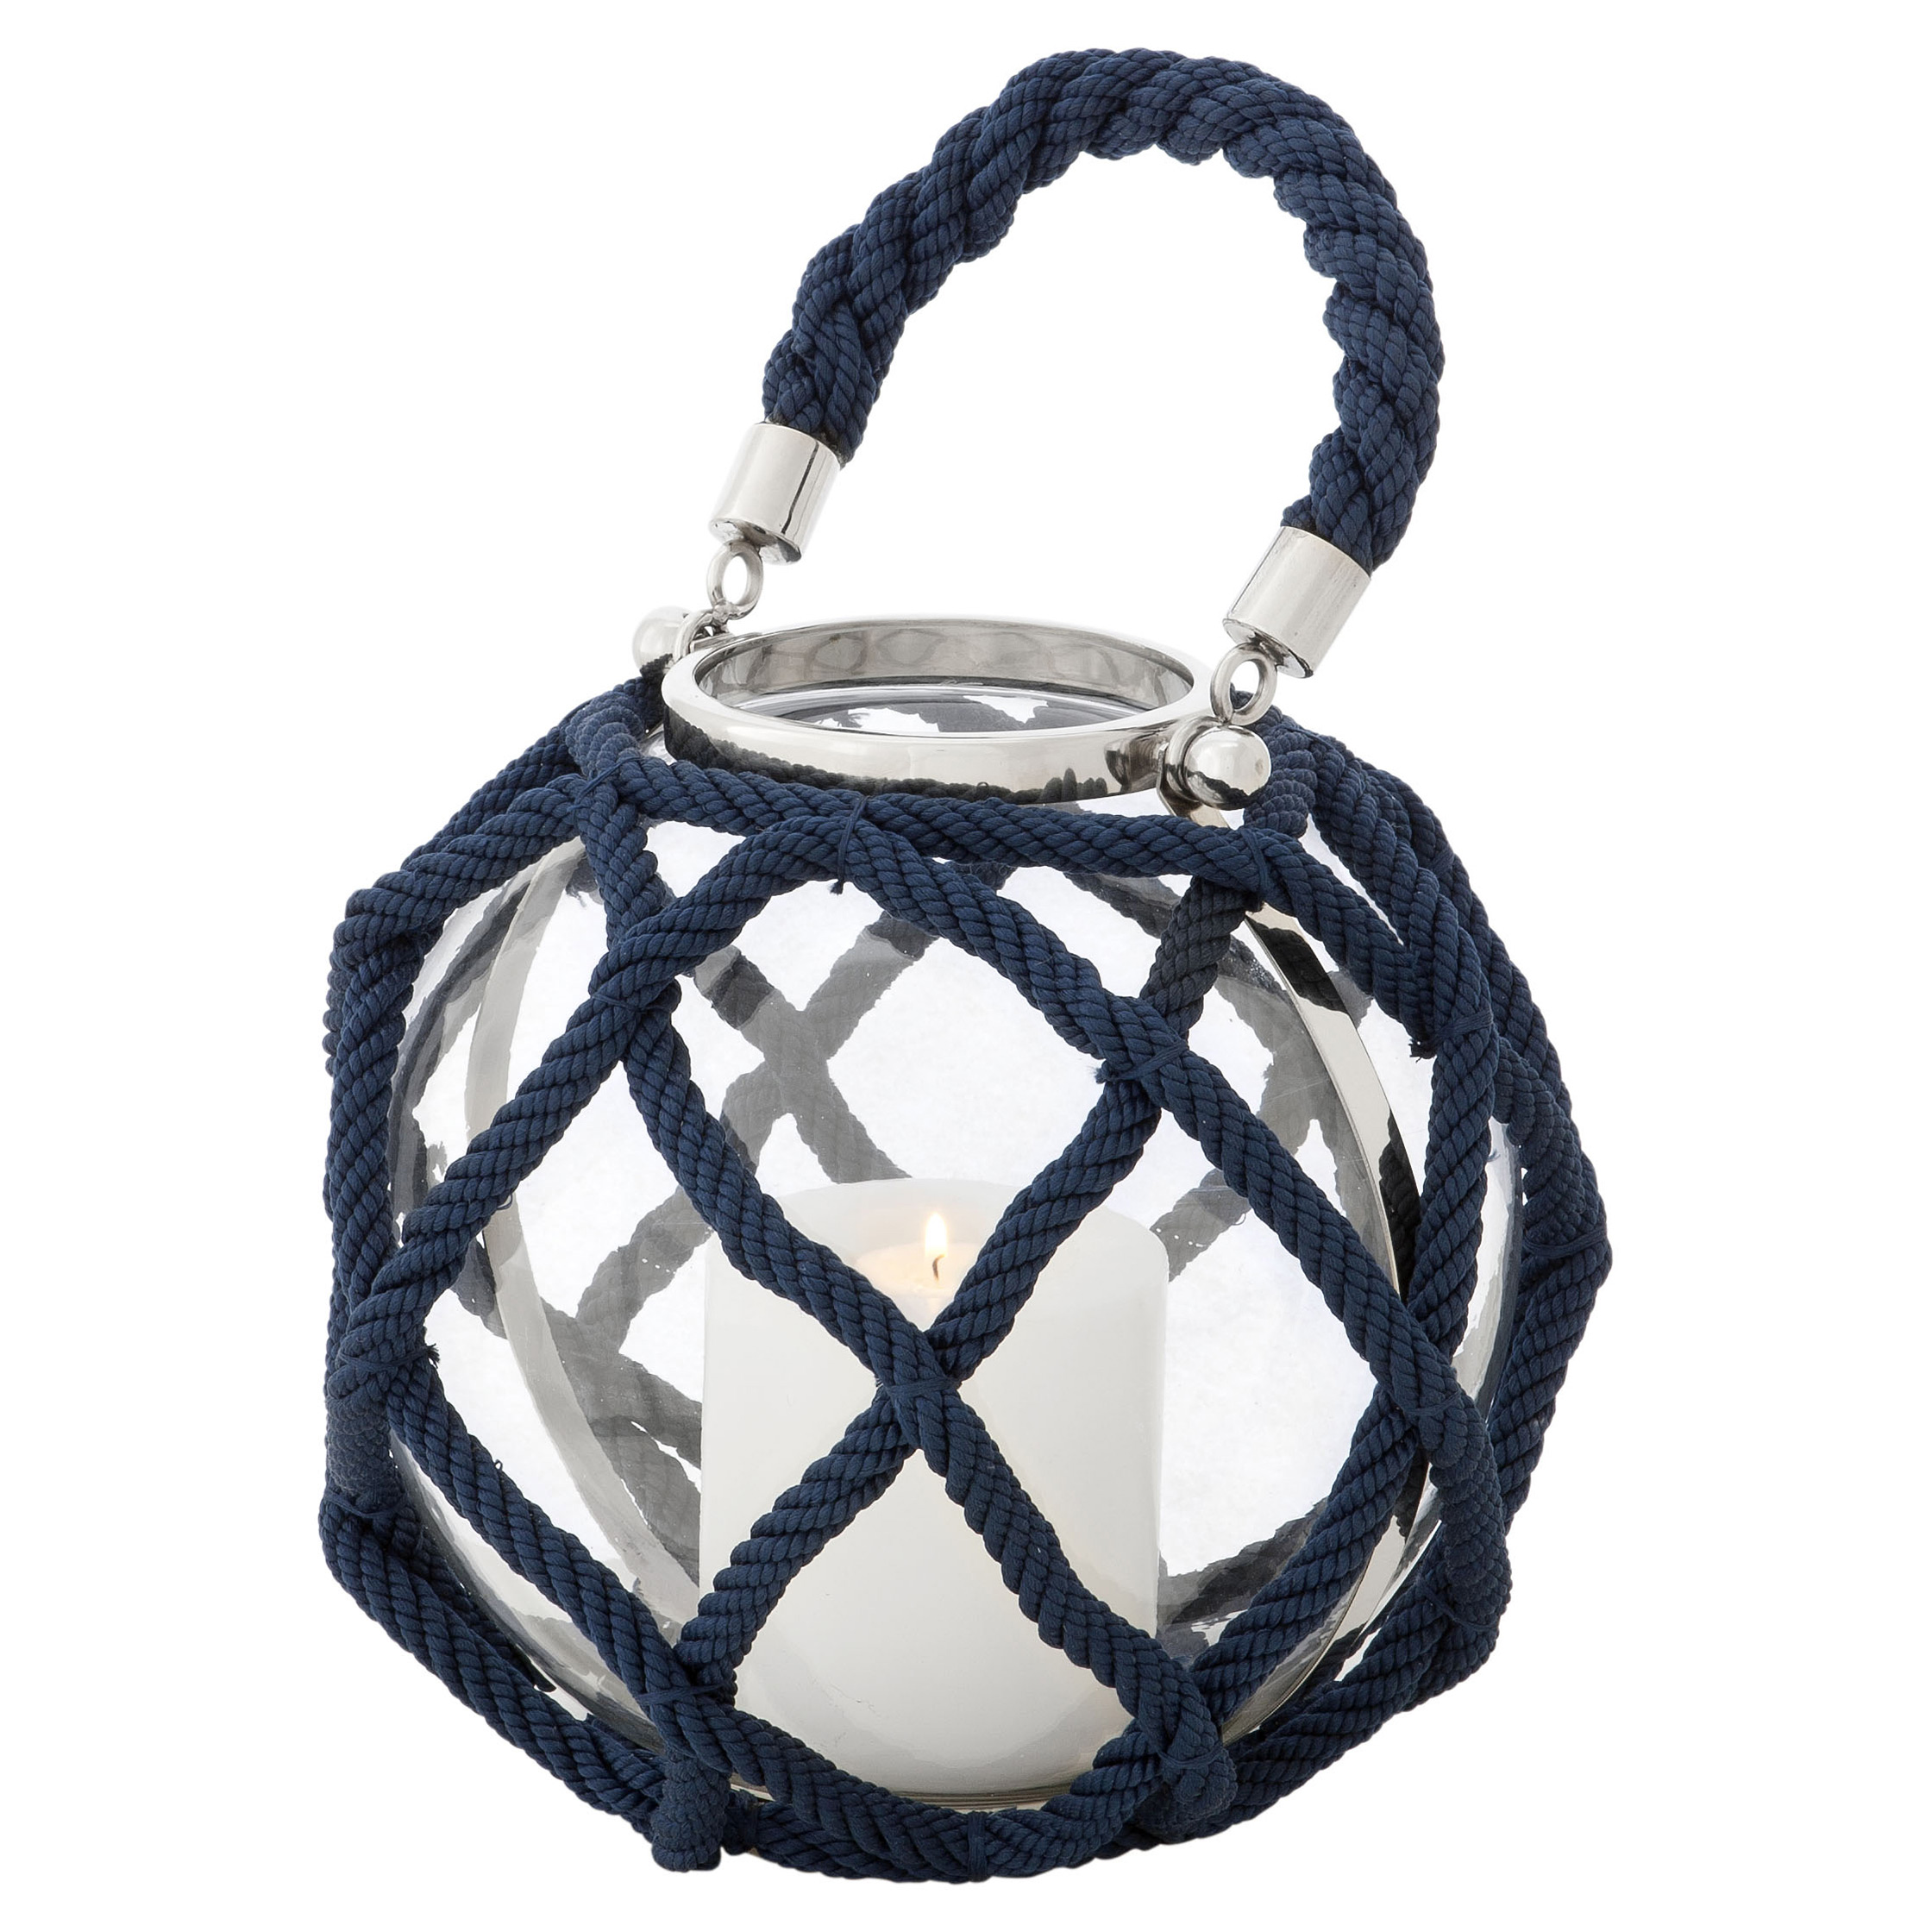 Levi Coastal Beach Navy Blue Nautical Rope Round Lantern - 16H